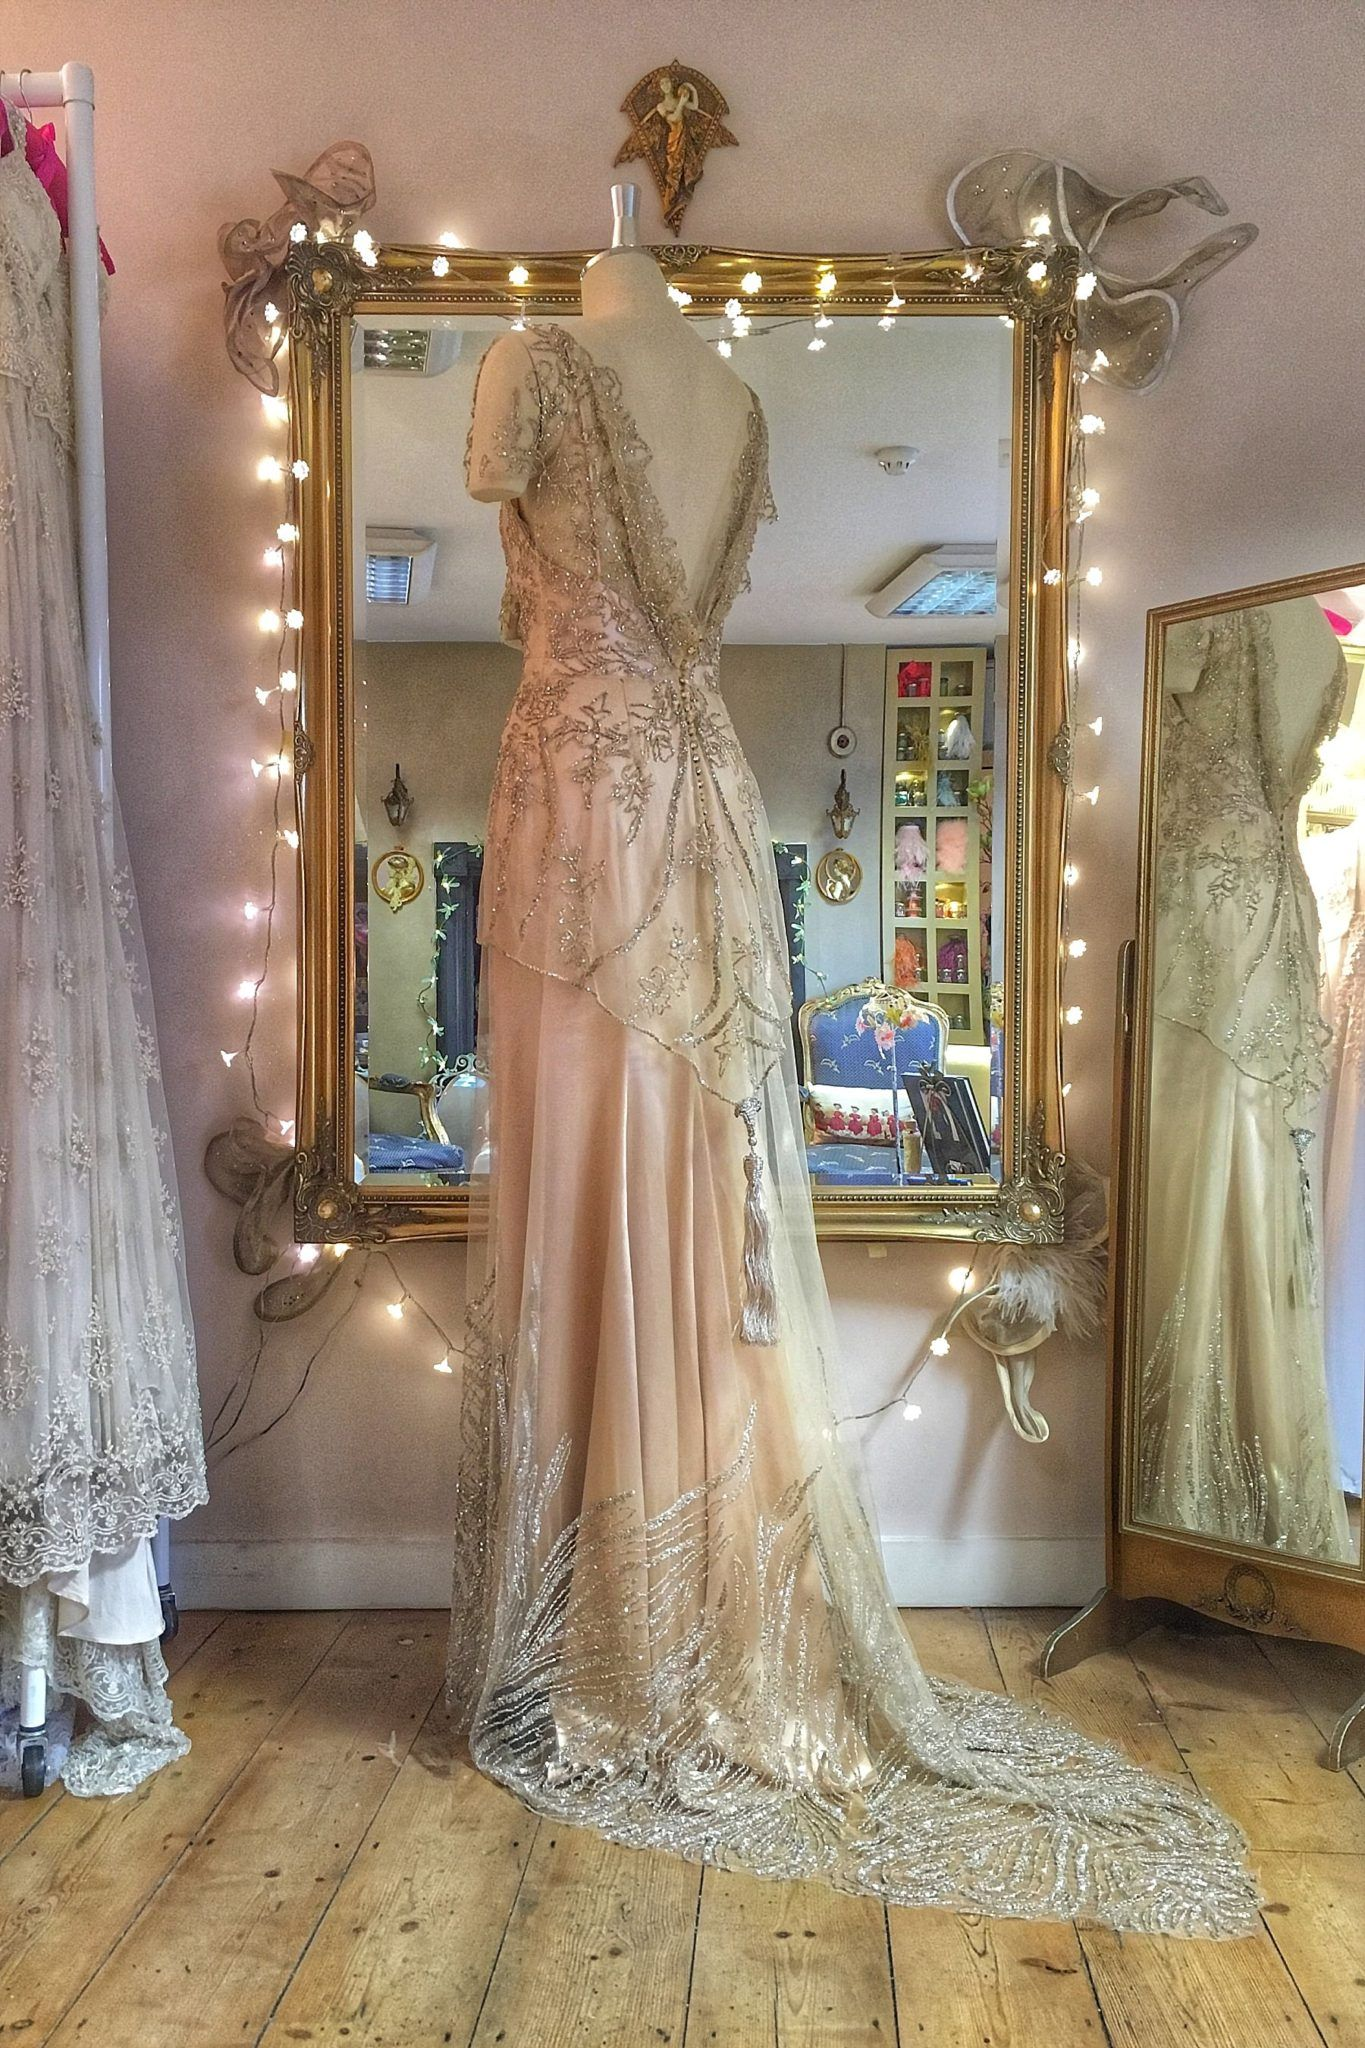 febc438f81d Beaded Tulle Couture Wedding Dress in pale gold and antique silver ...